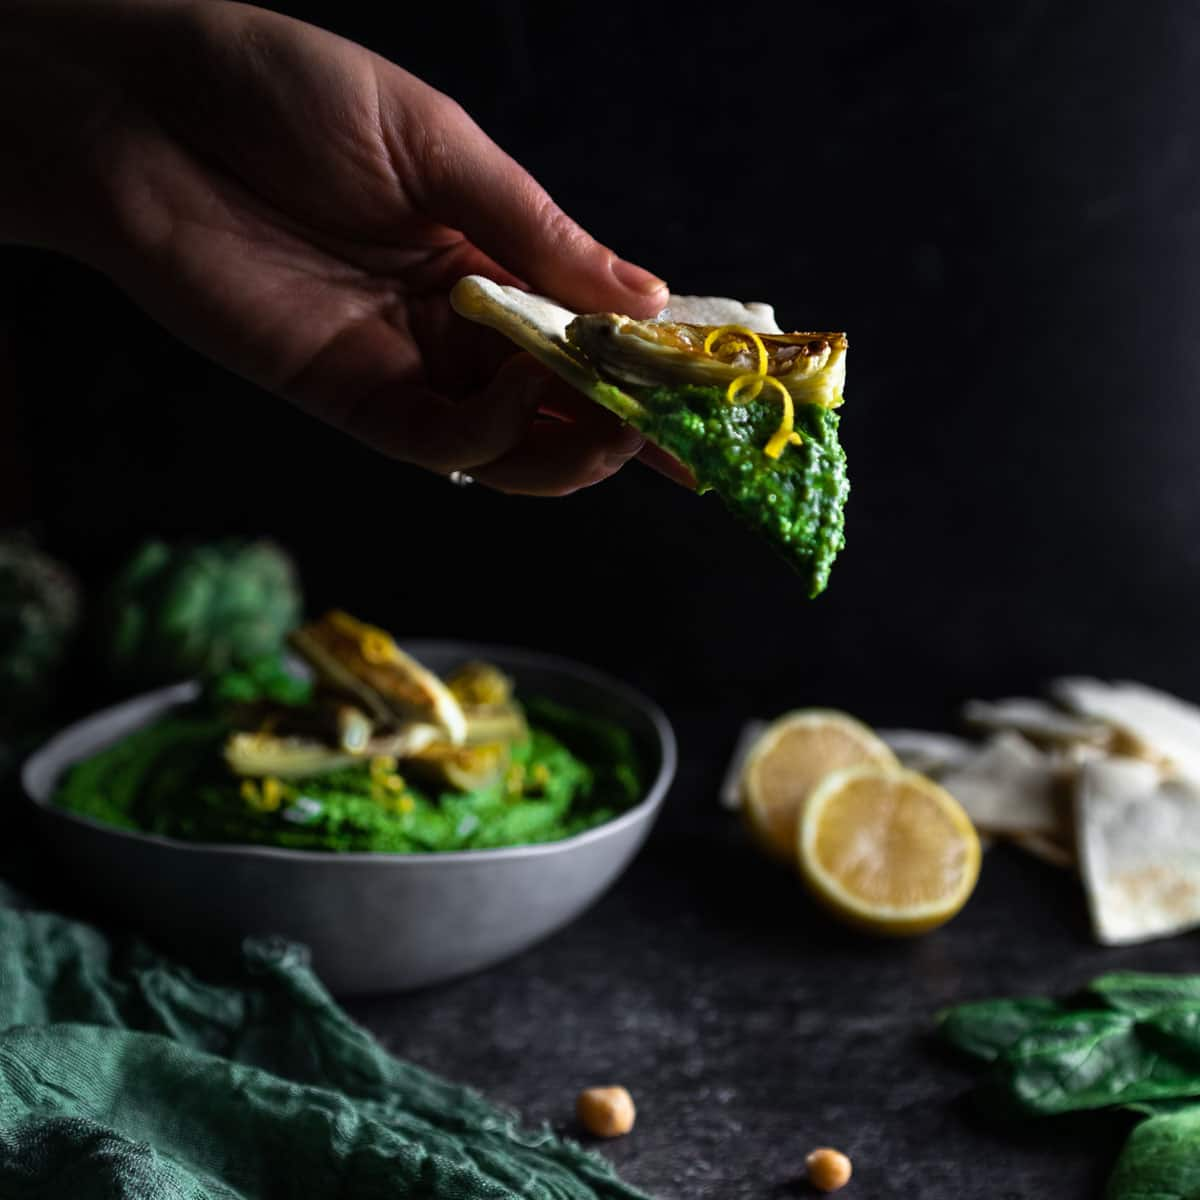 Lemon zest spiral garnishing a piece of pita bread topped with spinach hummus and an artichoke heart